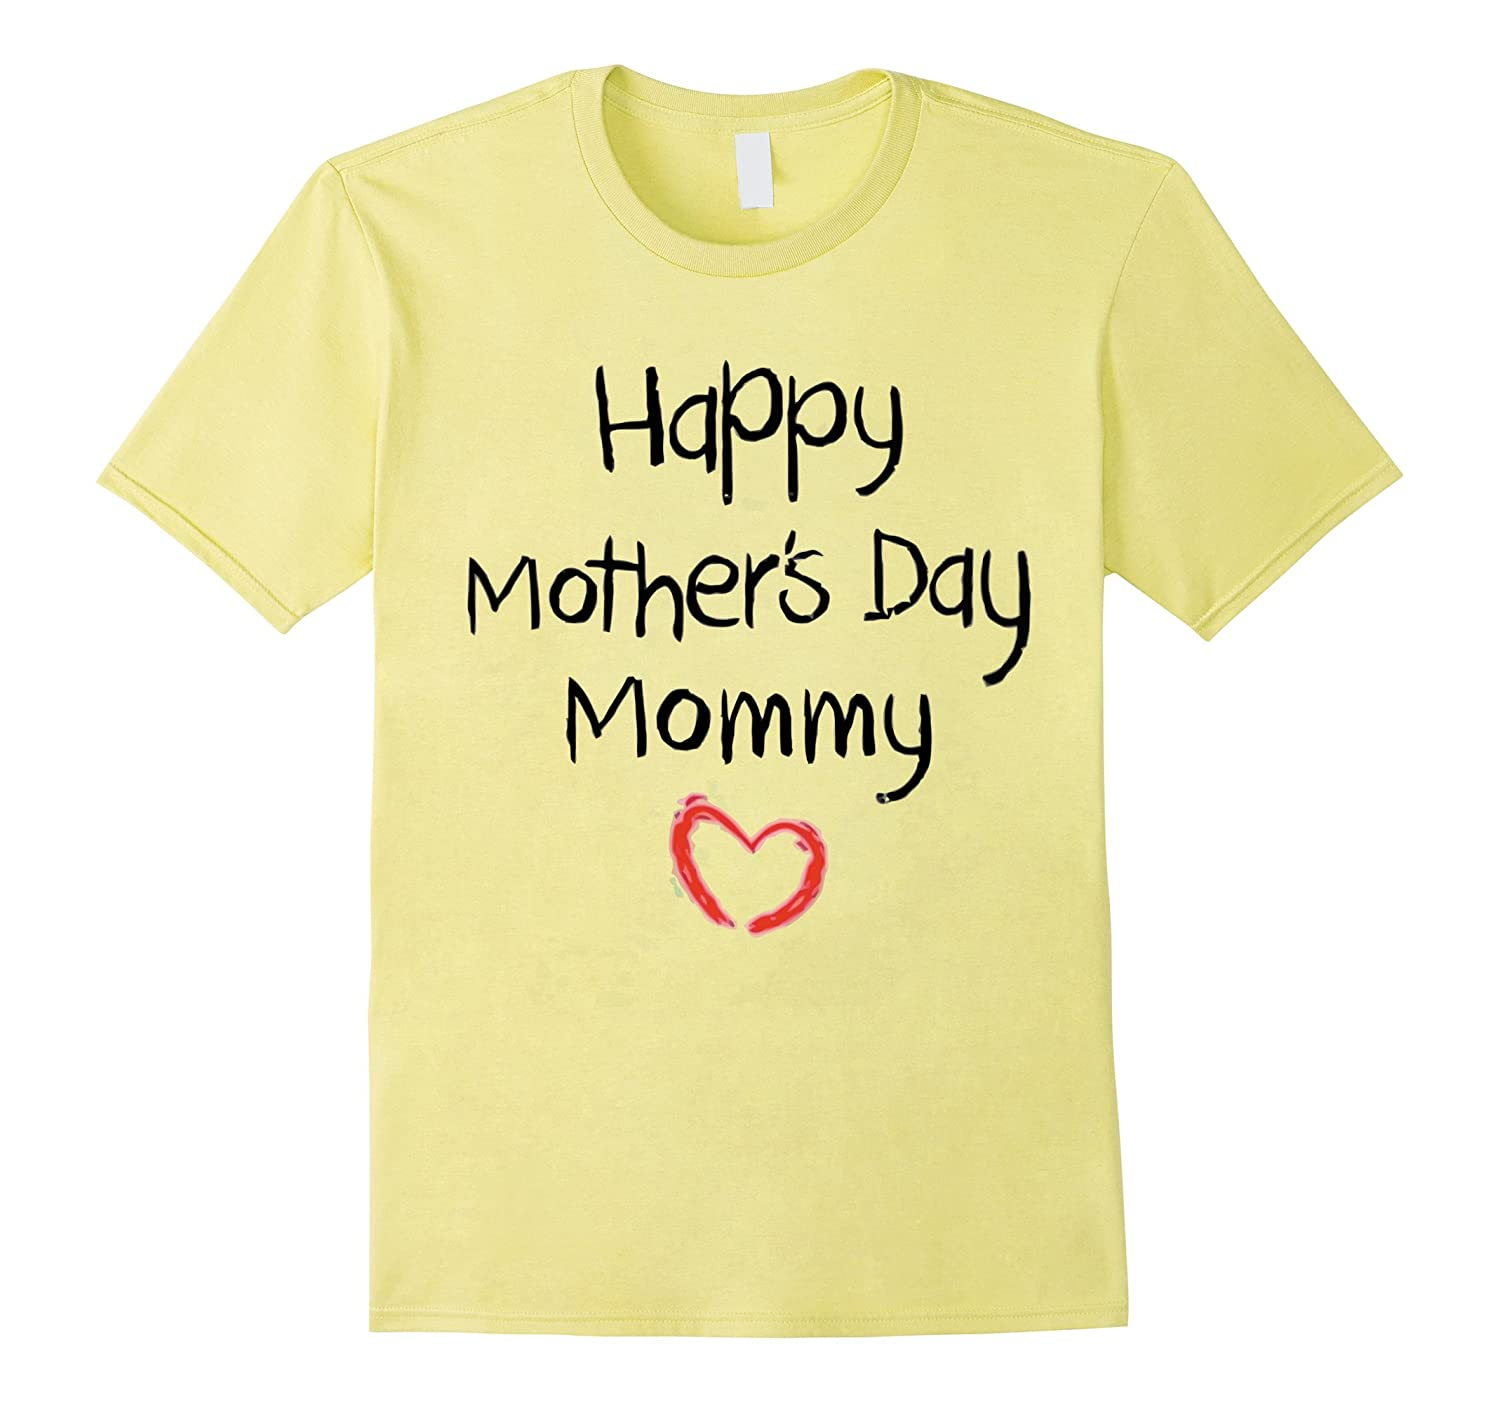 Happy Mother's day mommy shirt